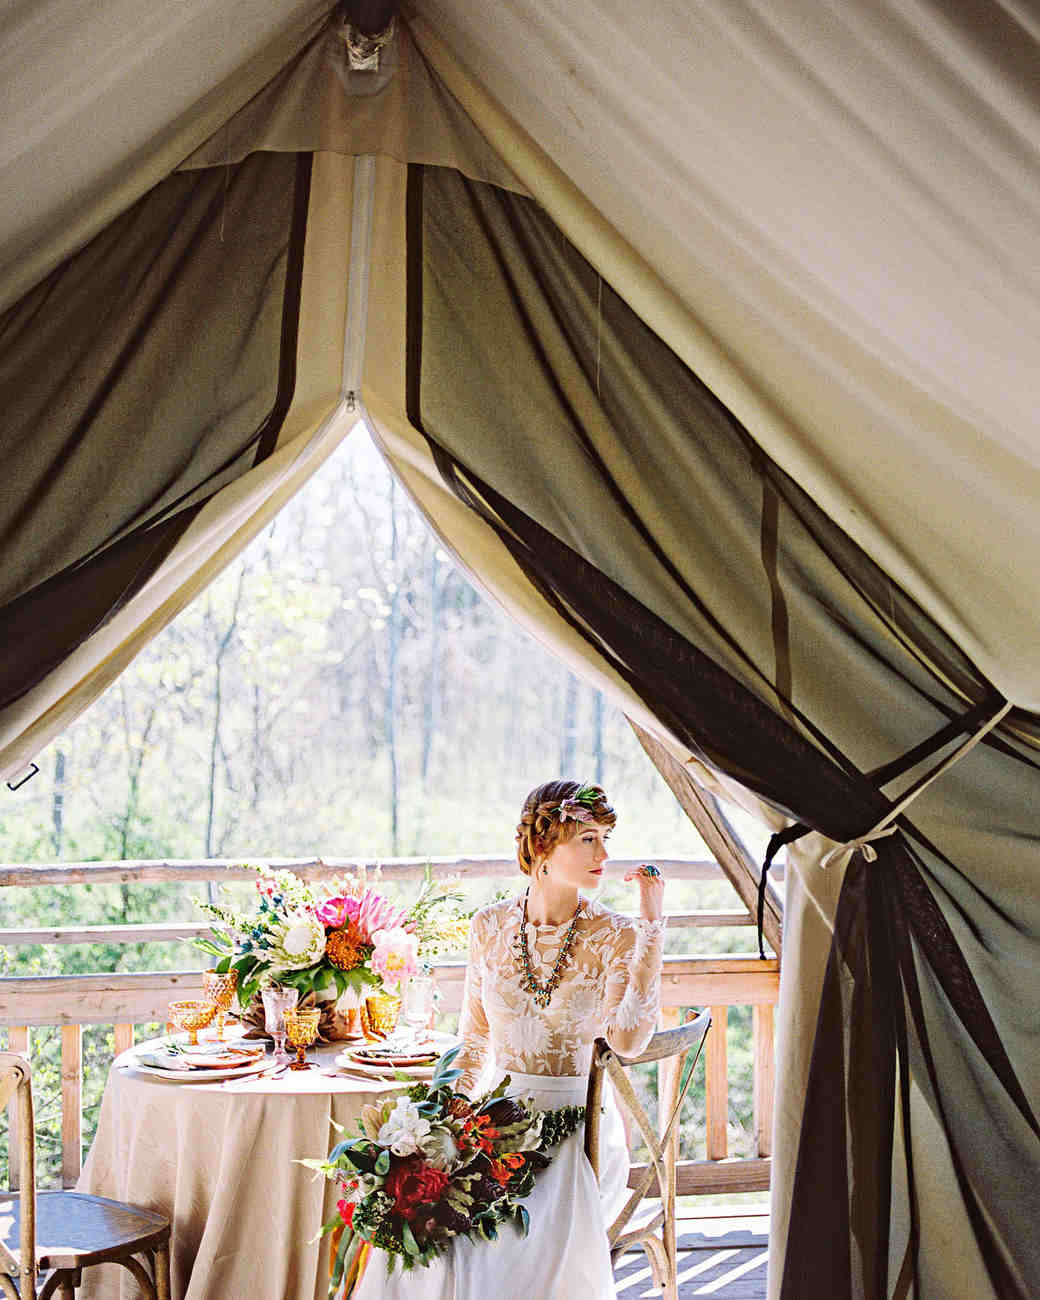 Camping Wedding Ideas: 18 Summer Camp Wedding Venues For Kicking Back And Getting